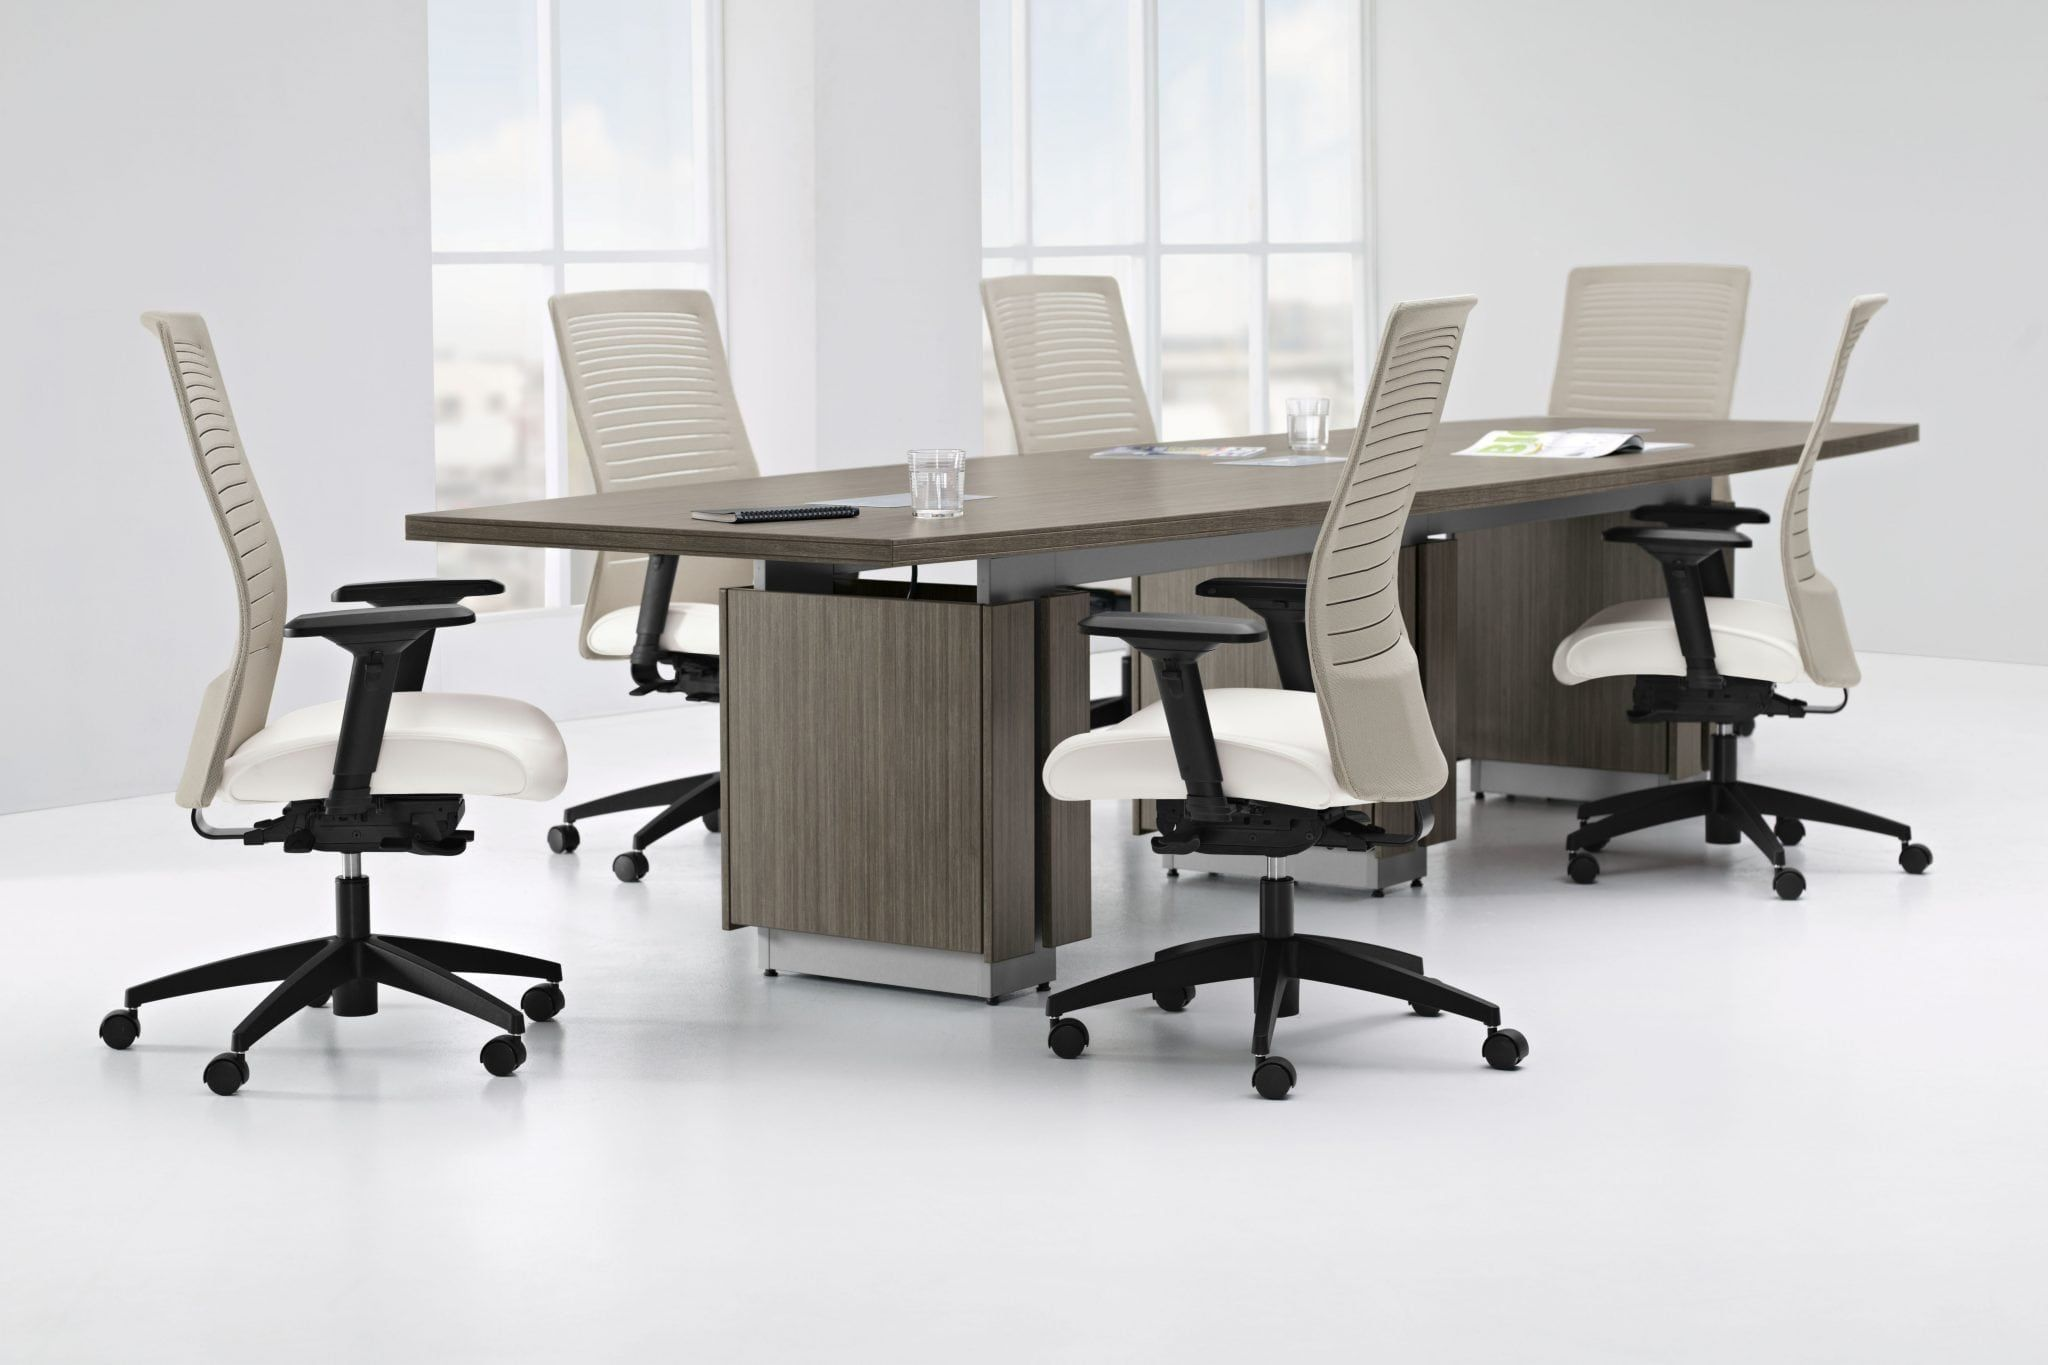 Conference table by Zira. Shop our website, or call us